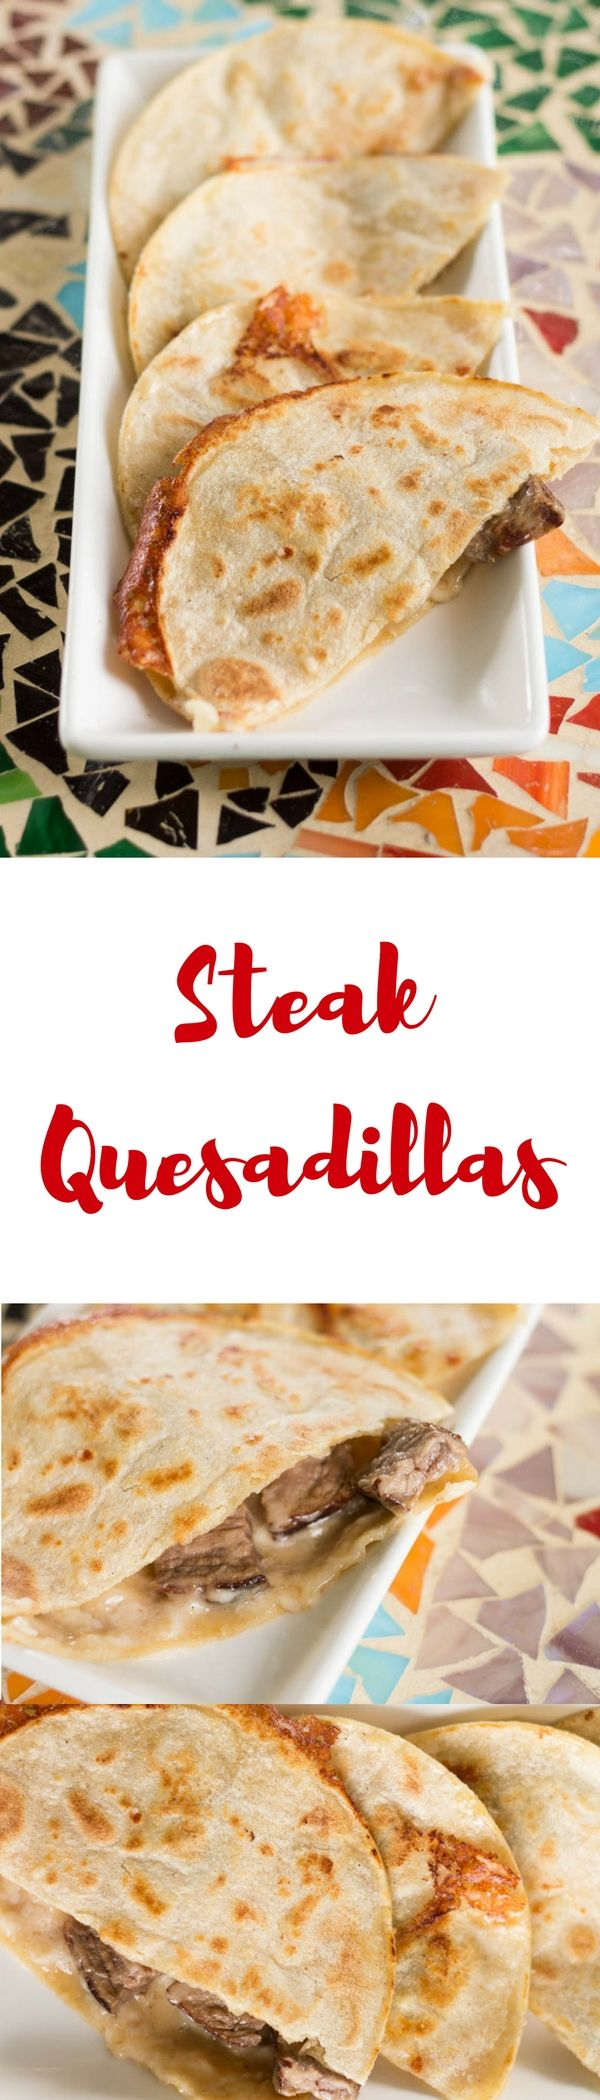 If you've never used corn tortillas to make steak quesadillas, you're in for a treat! This steak quesadilla recipe is super easy and so delicious. #AuthenticSalsaStyle #ad @HERDEZ® Brand @Walmart